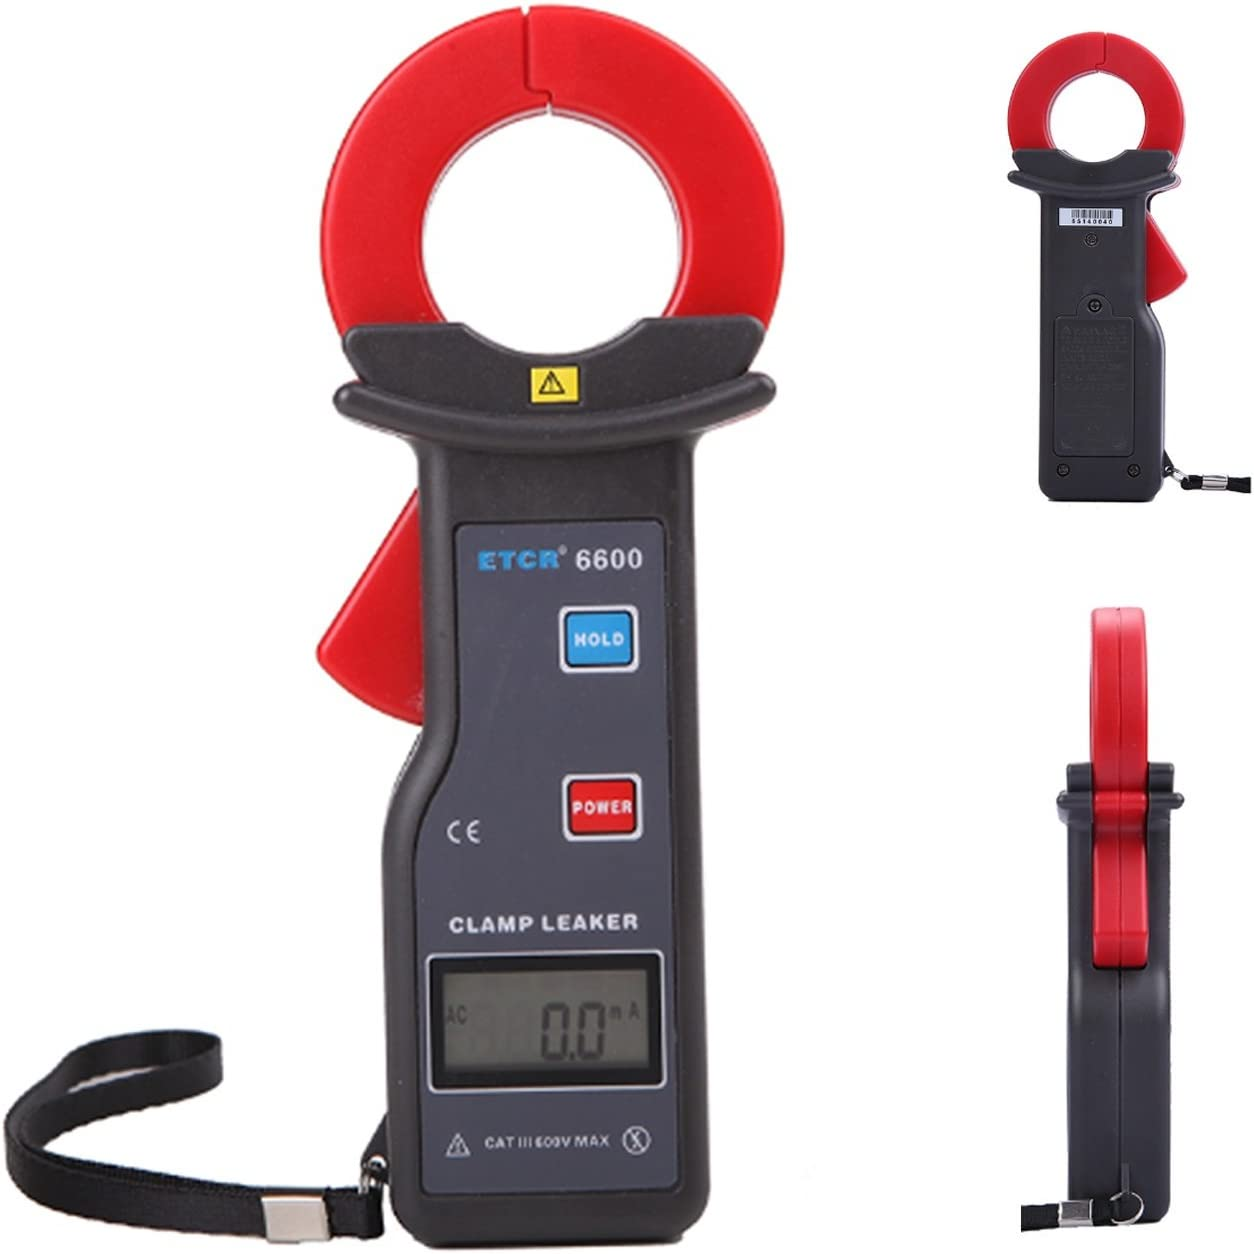 Jaw Size 35X40mm Clamp Leakage Current Meter AC Current Measurement Range AC 0.00mA to 300.0A with RS232 Interface Data Upload Function Data Storage 99 Groups ETCR6600